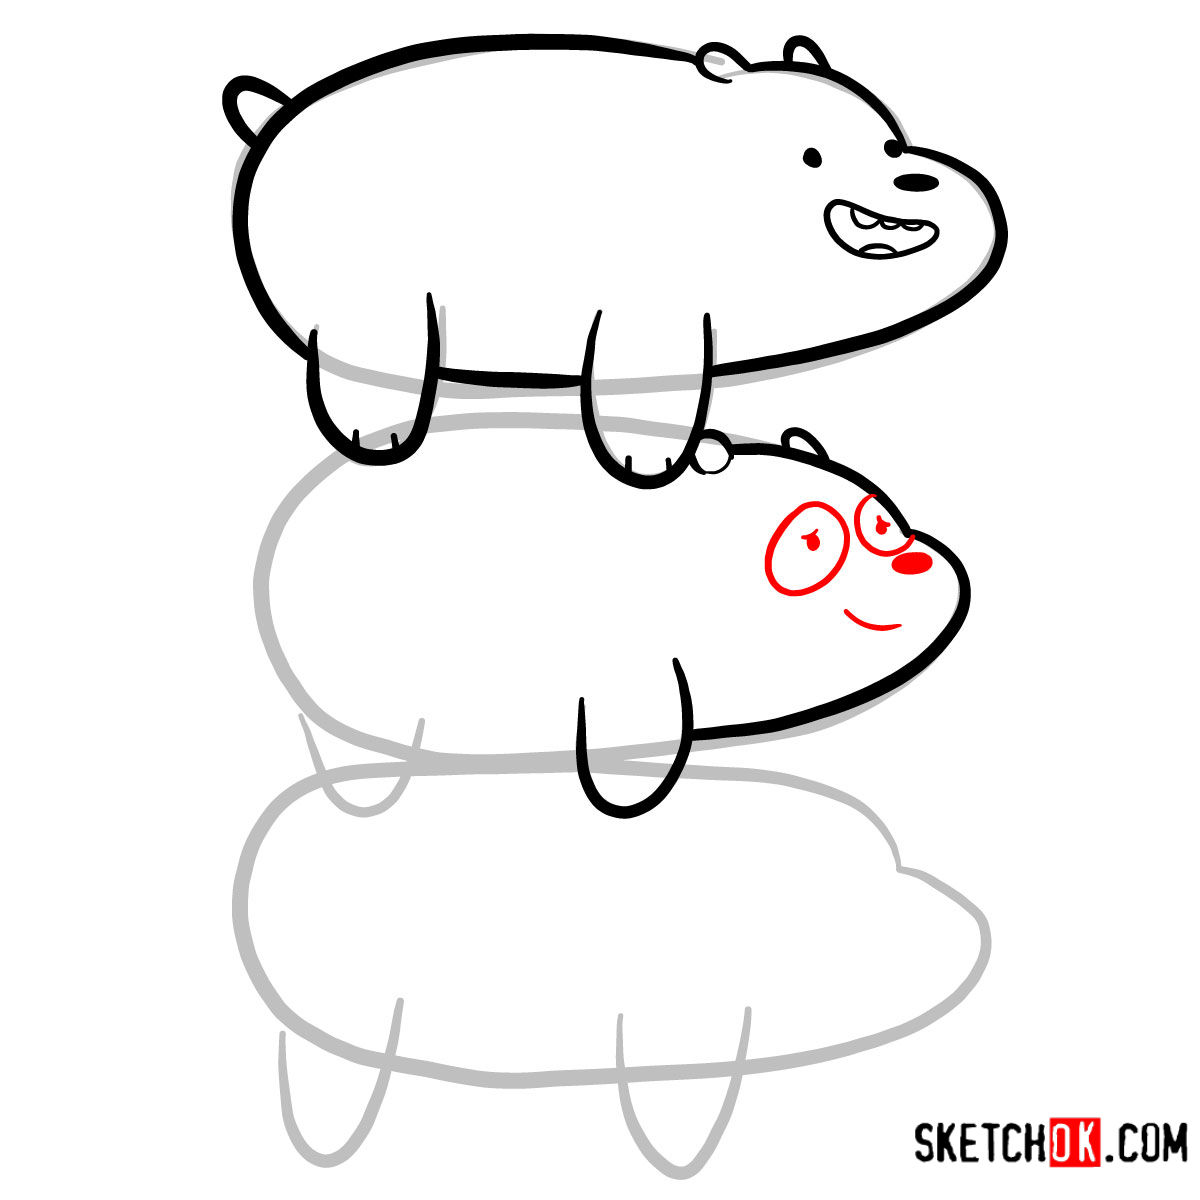 How to draw the bears standing on each others back | We Bare Bears - step 07